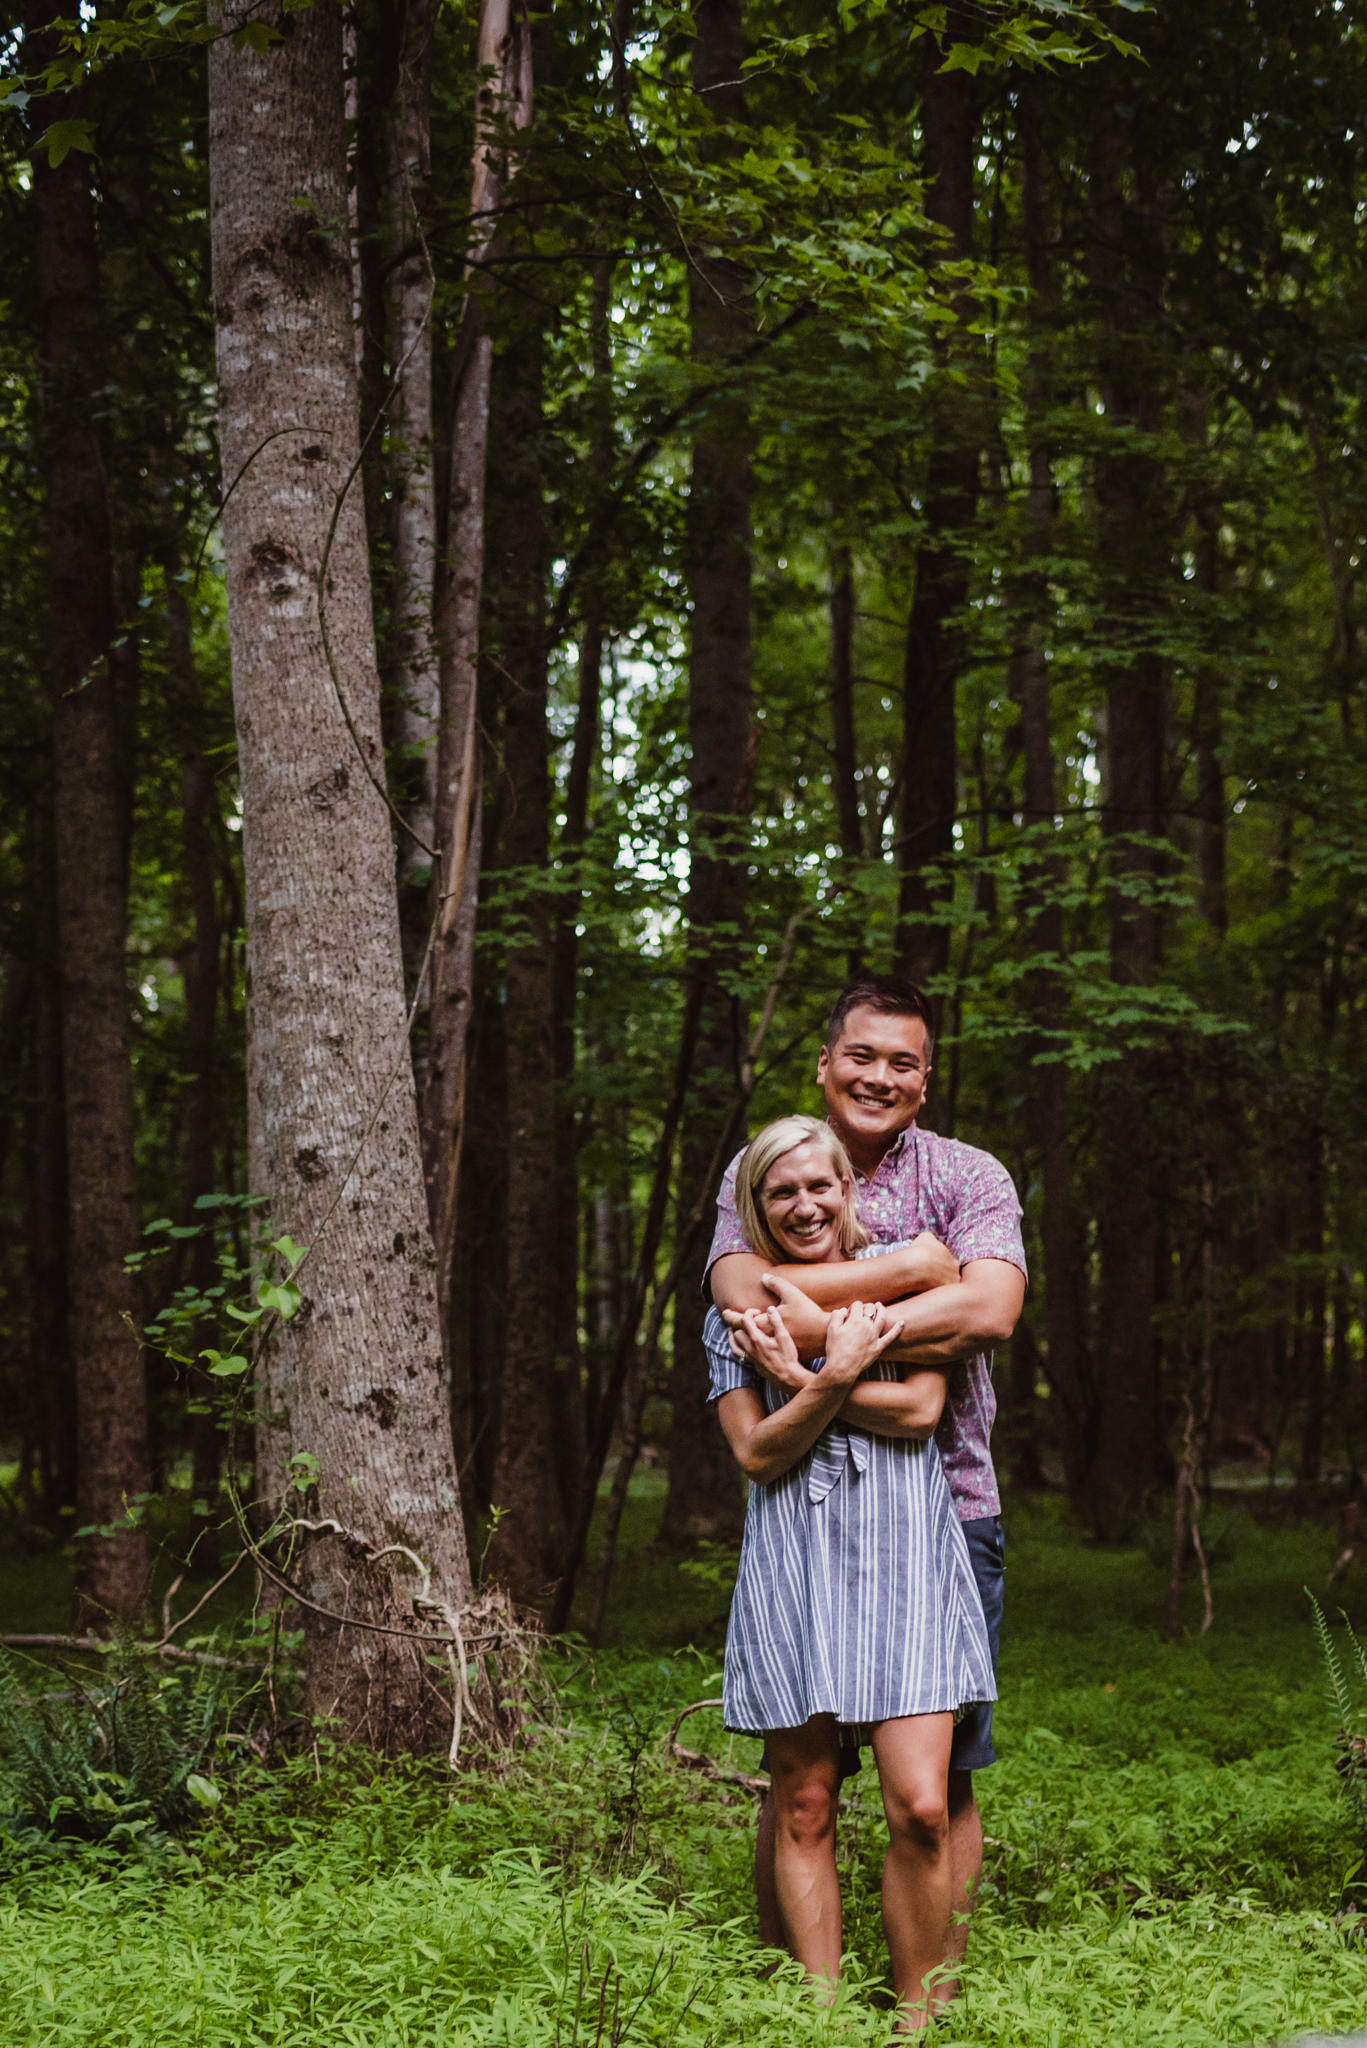 Kristin and Drew hugged and laughed in the woods during their engagement shoot in Raleigh with Rose Trail Images.